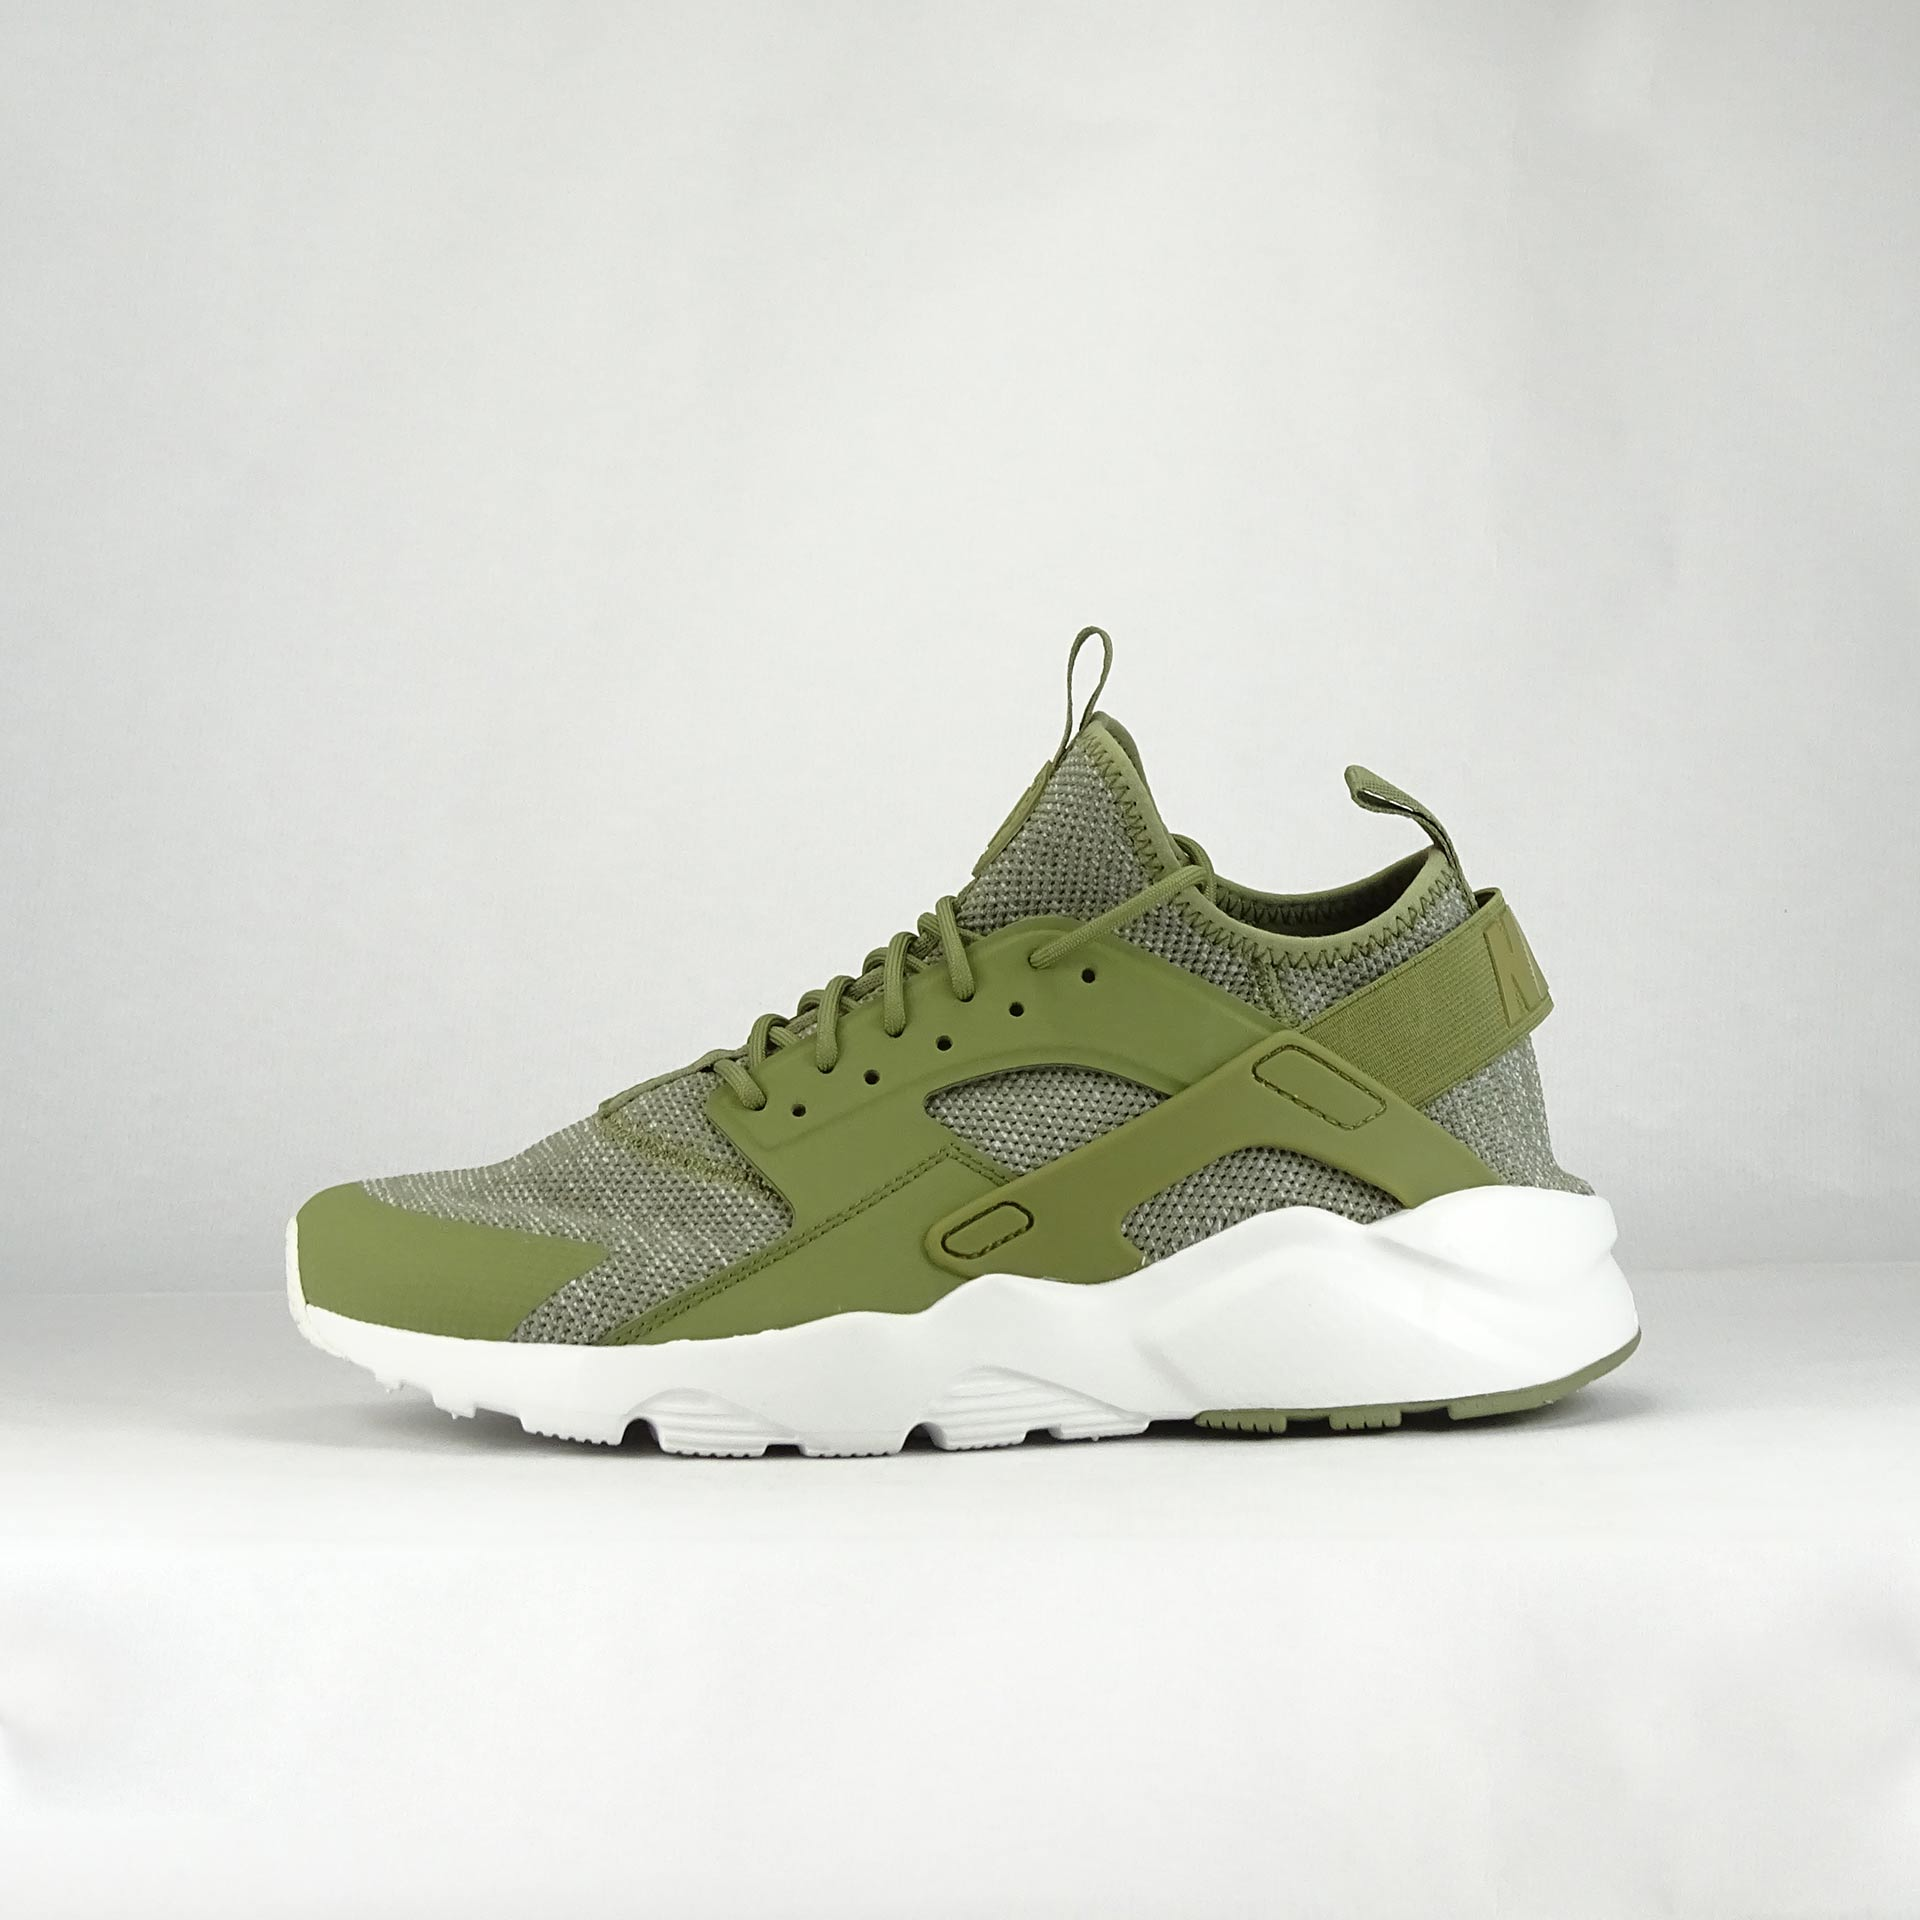 NIKE AIR HUARACHE RUN ULTRA BR MA, 7